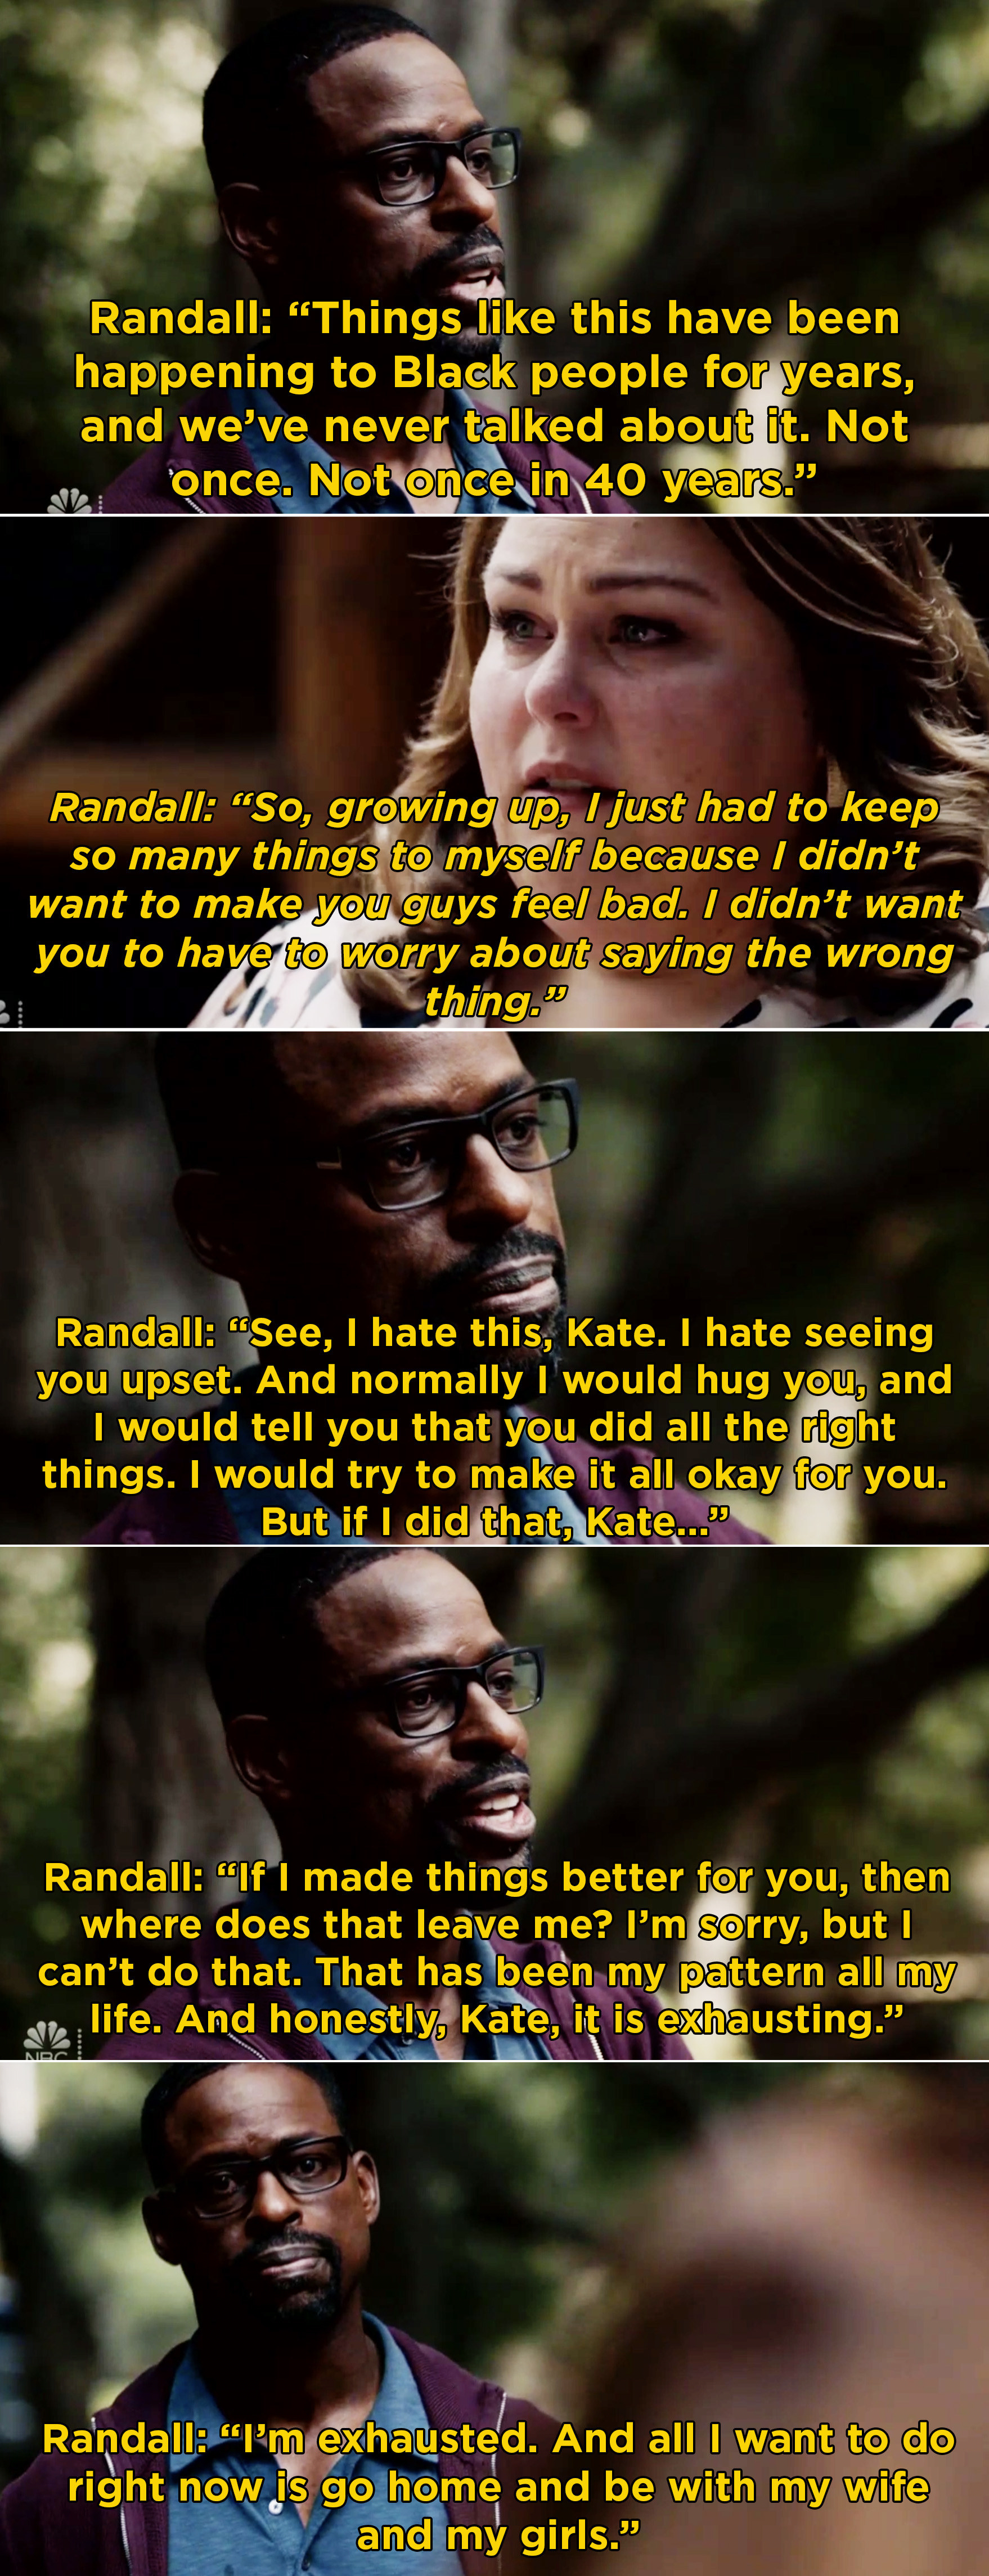 Randall saying he's tired of trying to make Kate feel more comfortable when they talk about race